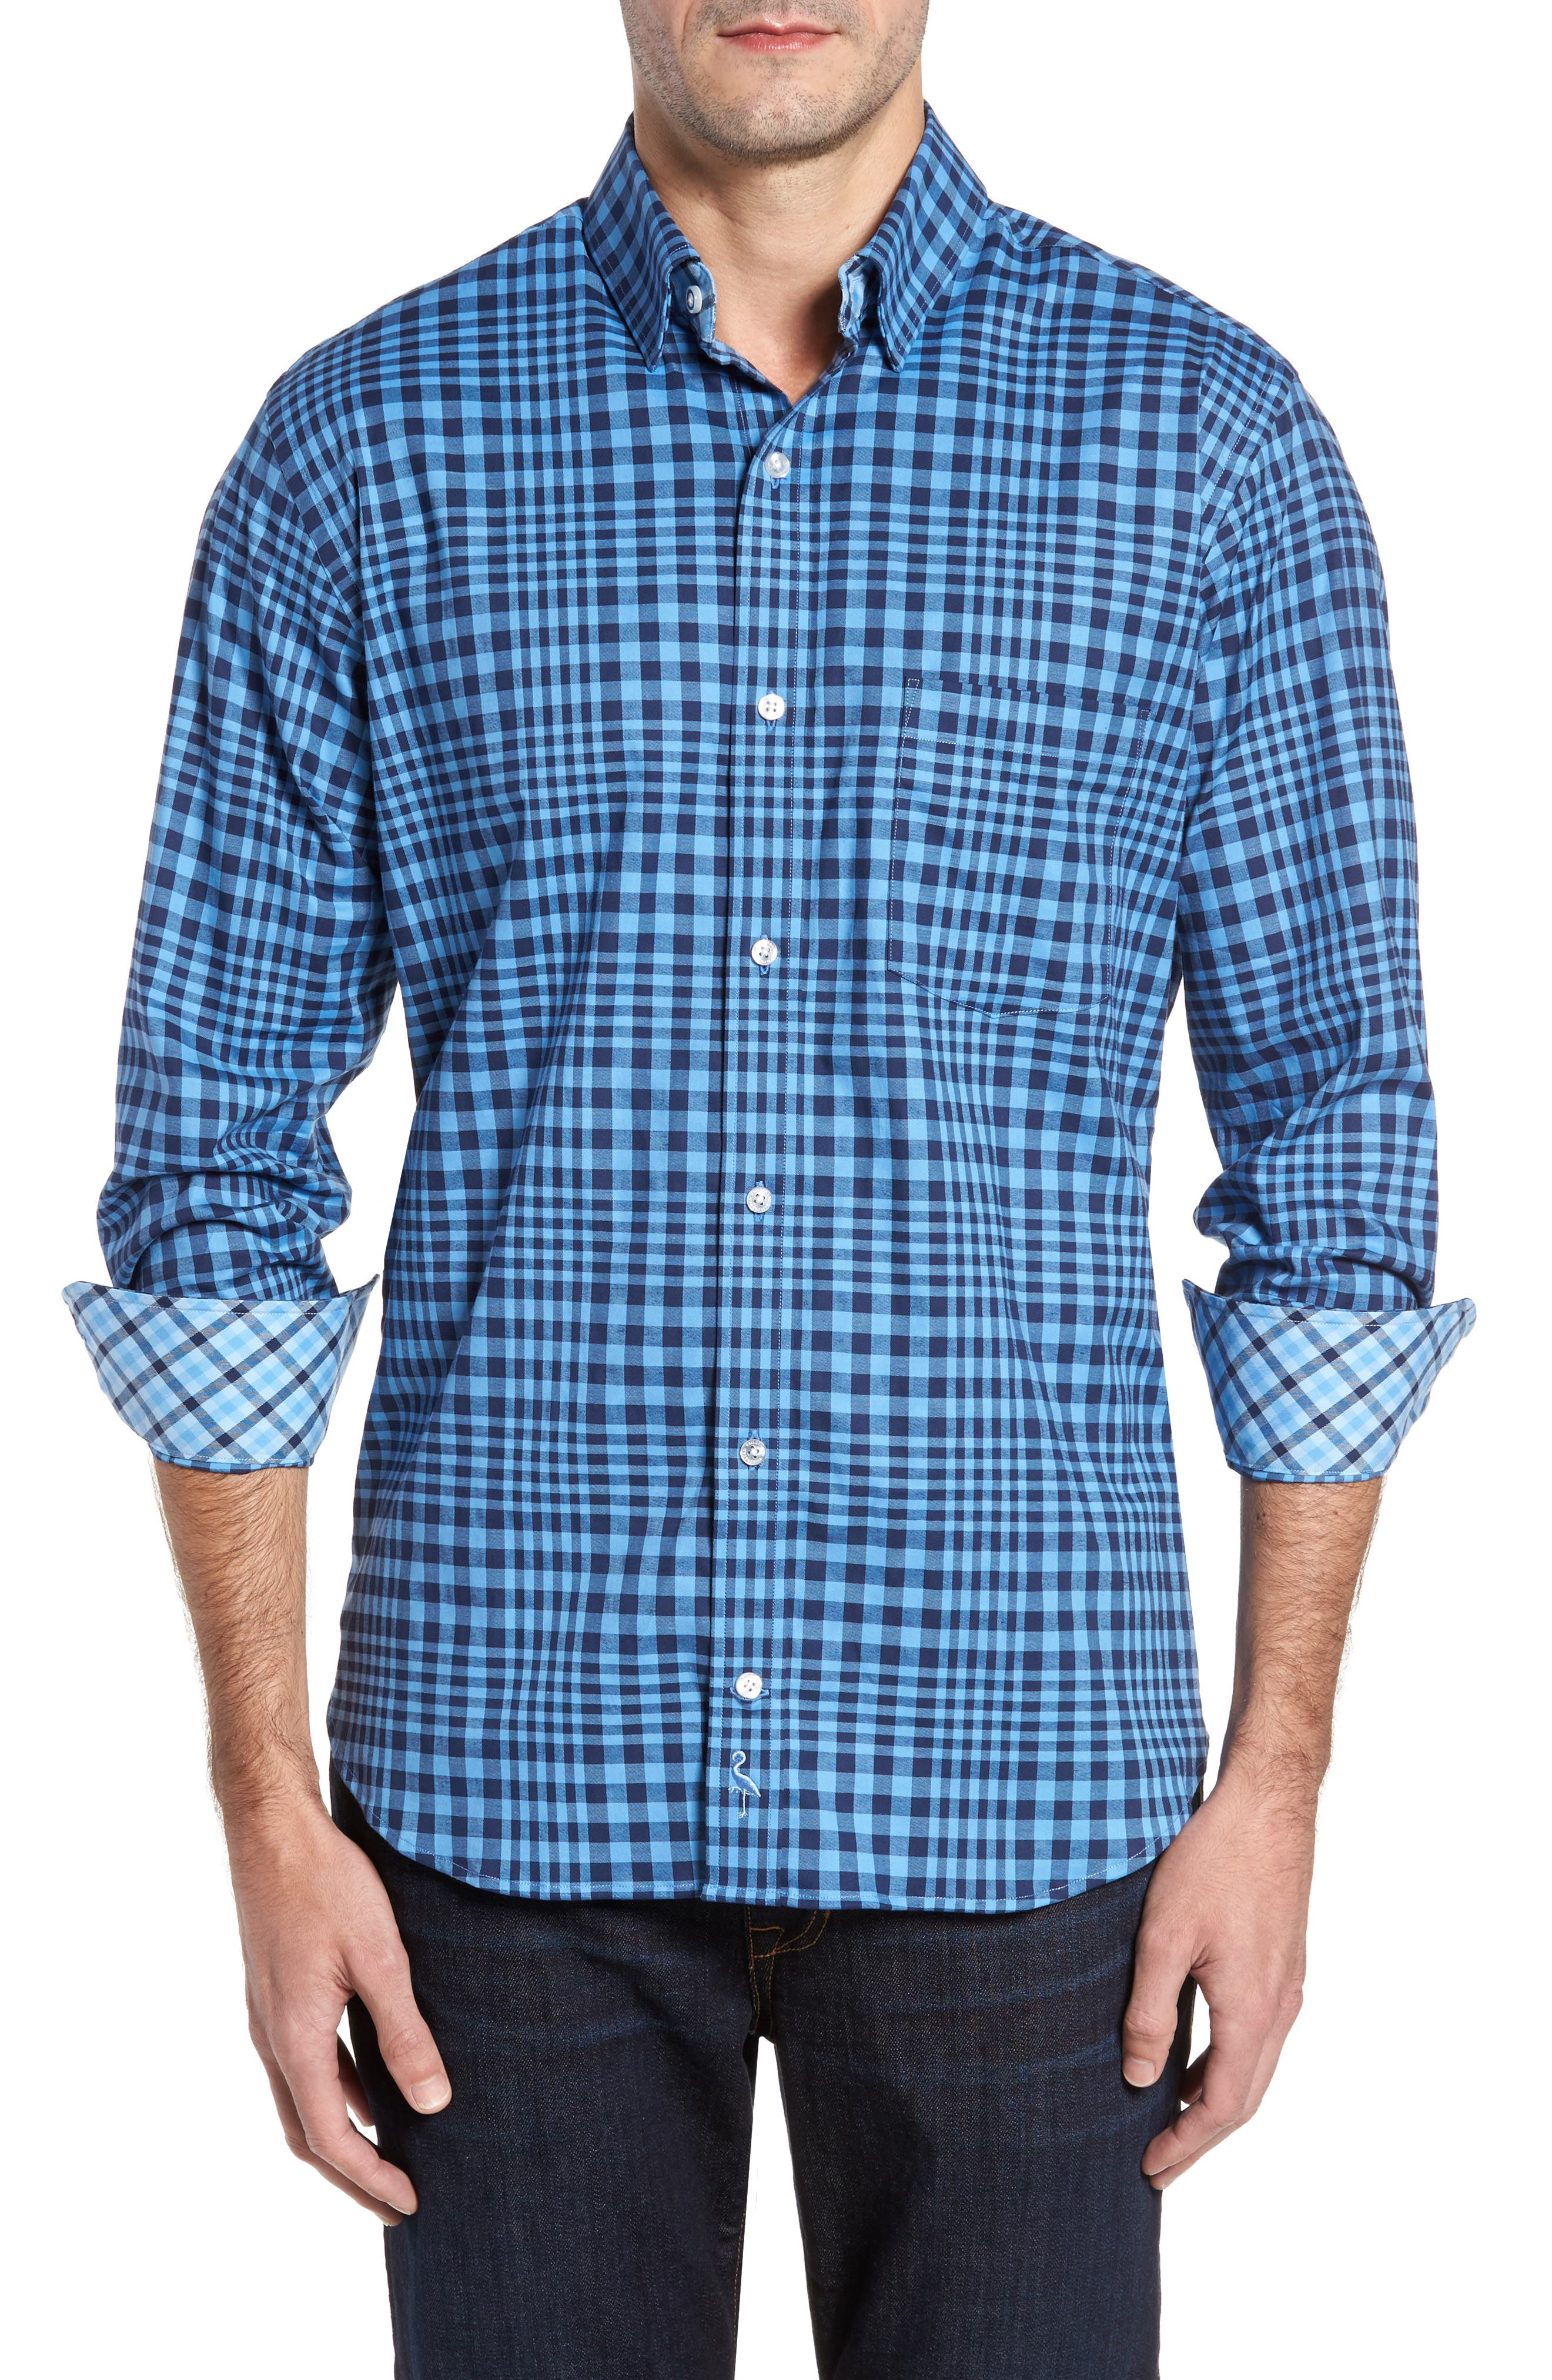 Alternate Image 1 Selected - TailorByrd Bayou Cone Check Sport Shirt